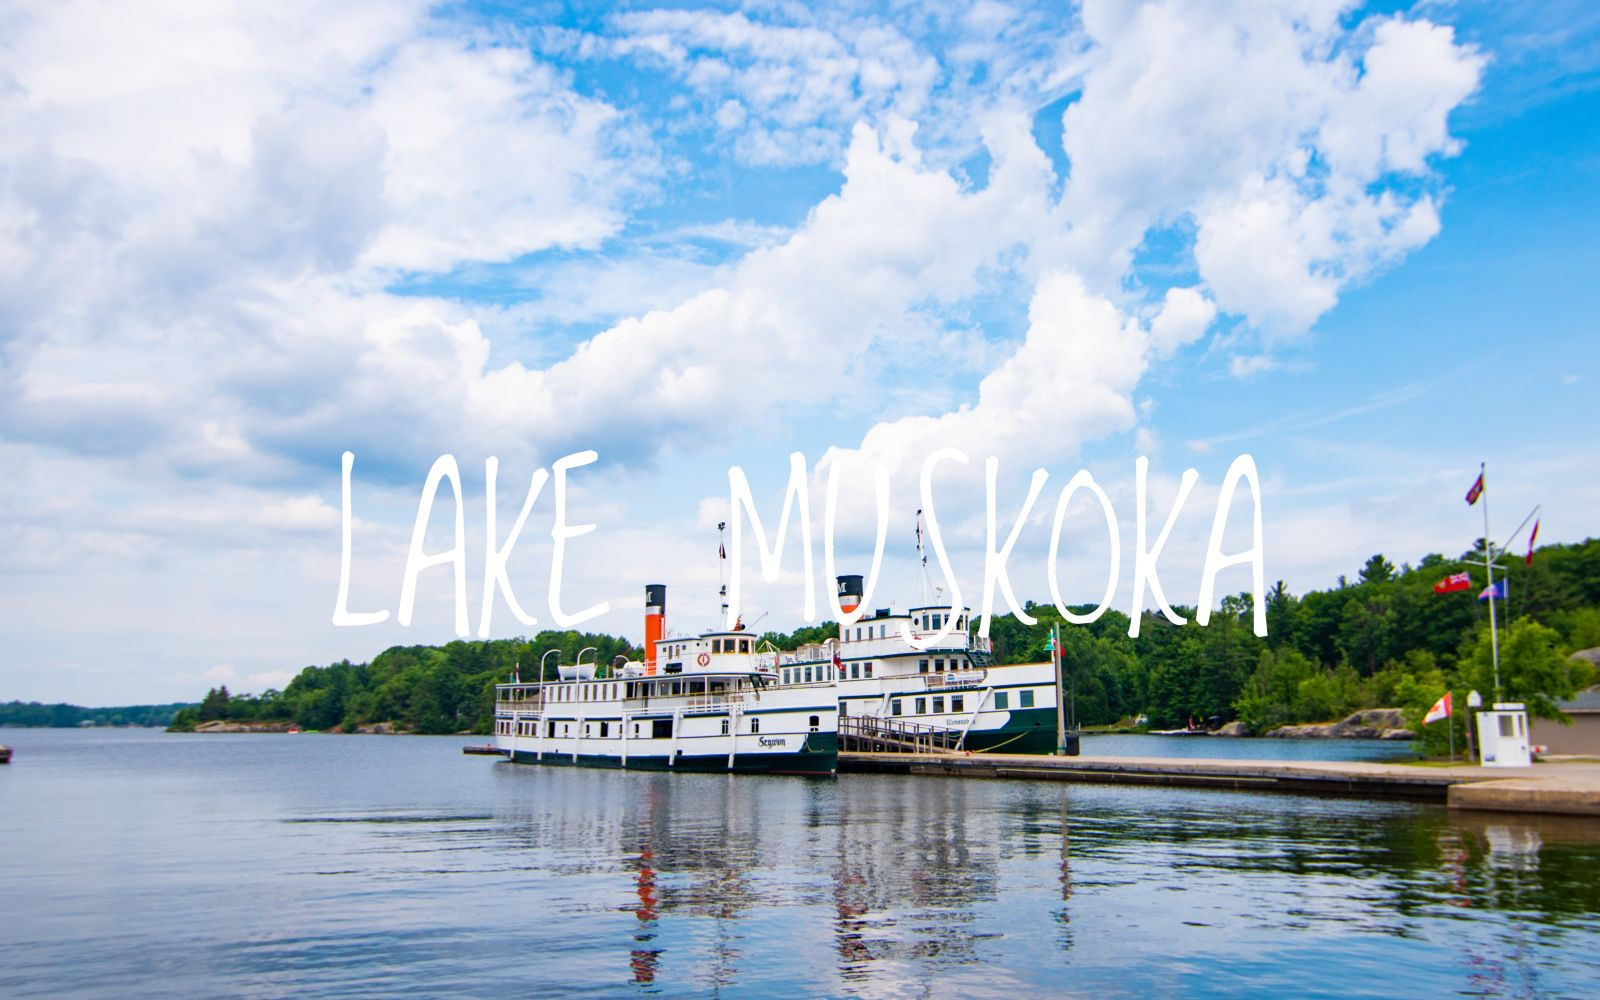 About Lake Muskoka Jack Janssen Chestnut Park Real Estate